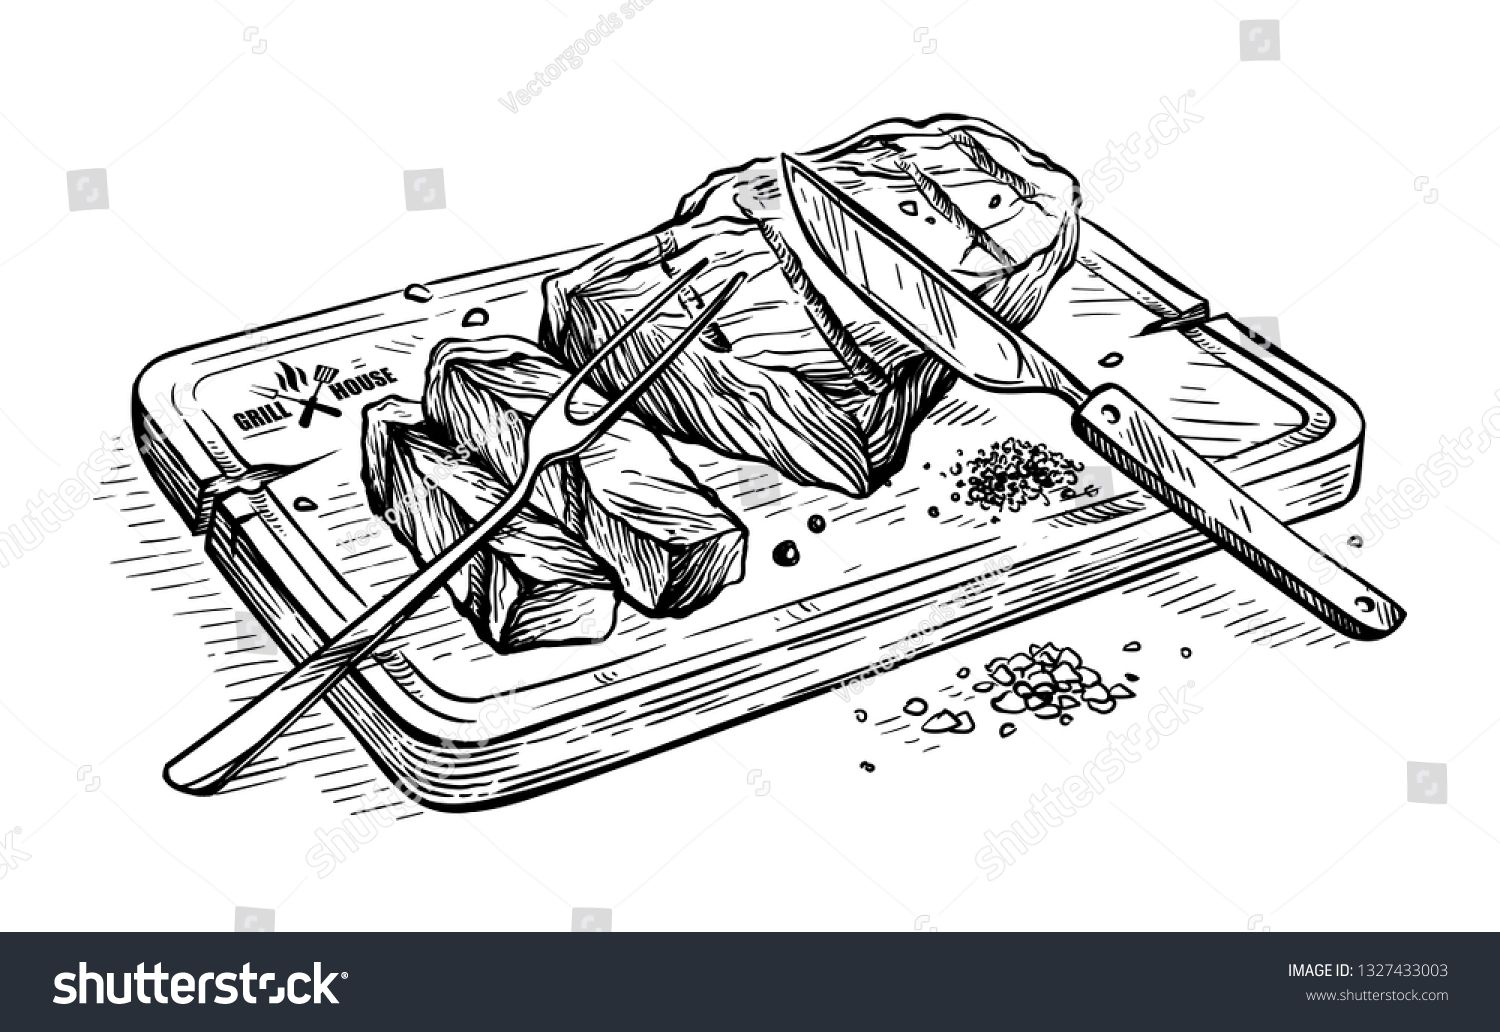 Sketch Hand Drawn Sliced Grilled Bull Steak Striploin On Wooden Board With Knife And Fork Vector Illustration How To Draw Hands Knife Drawing Avenger Artwork